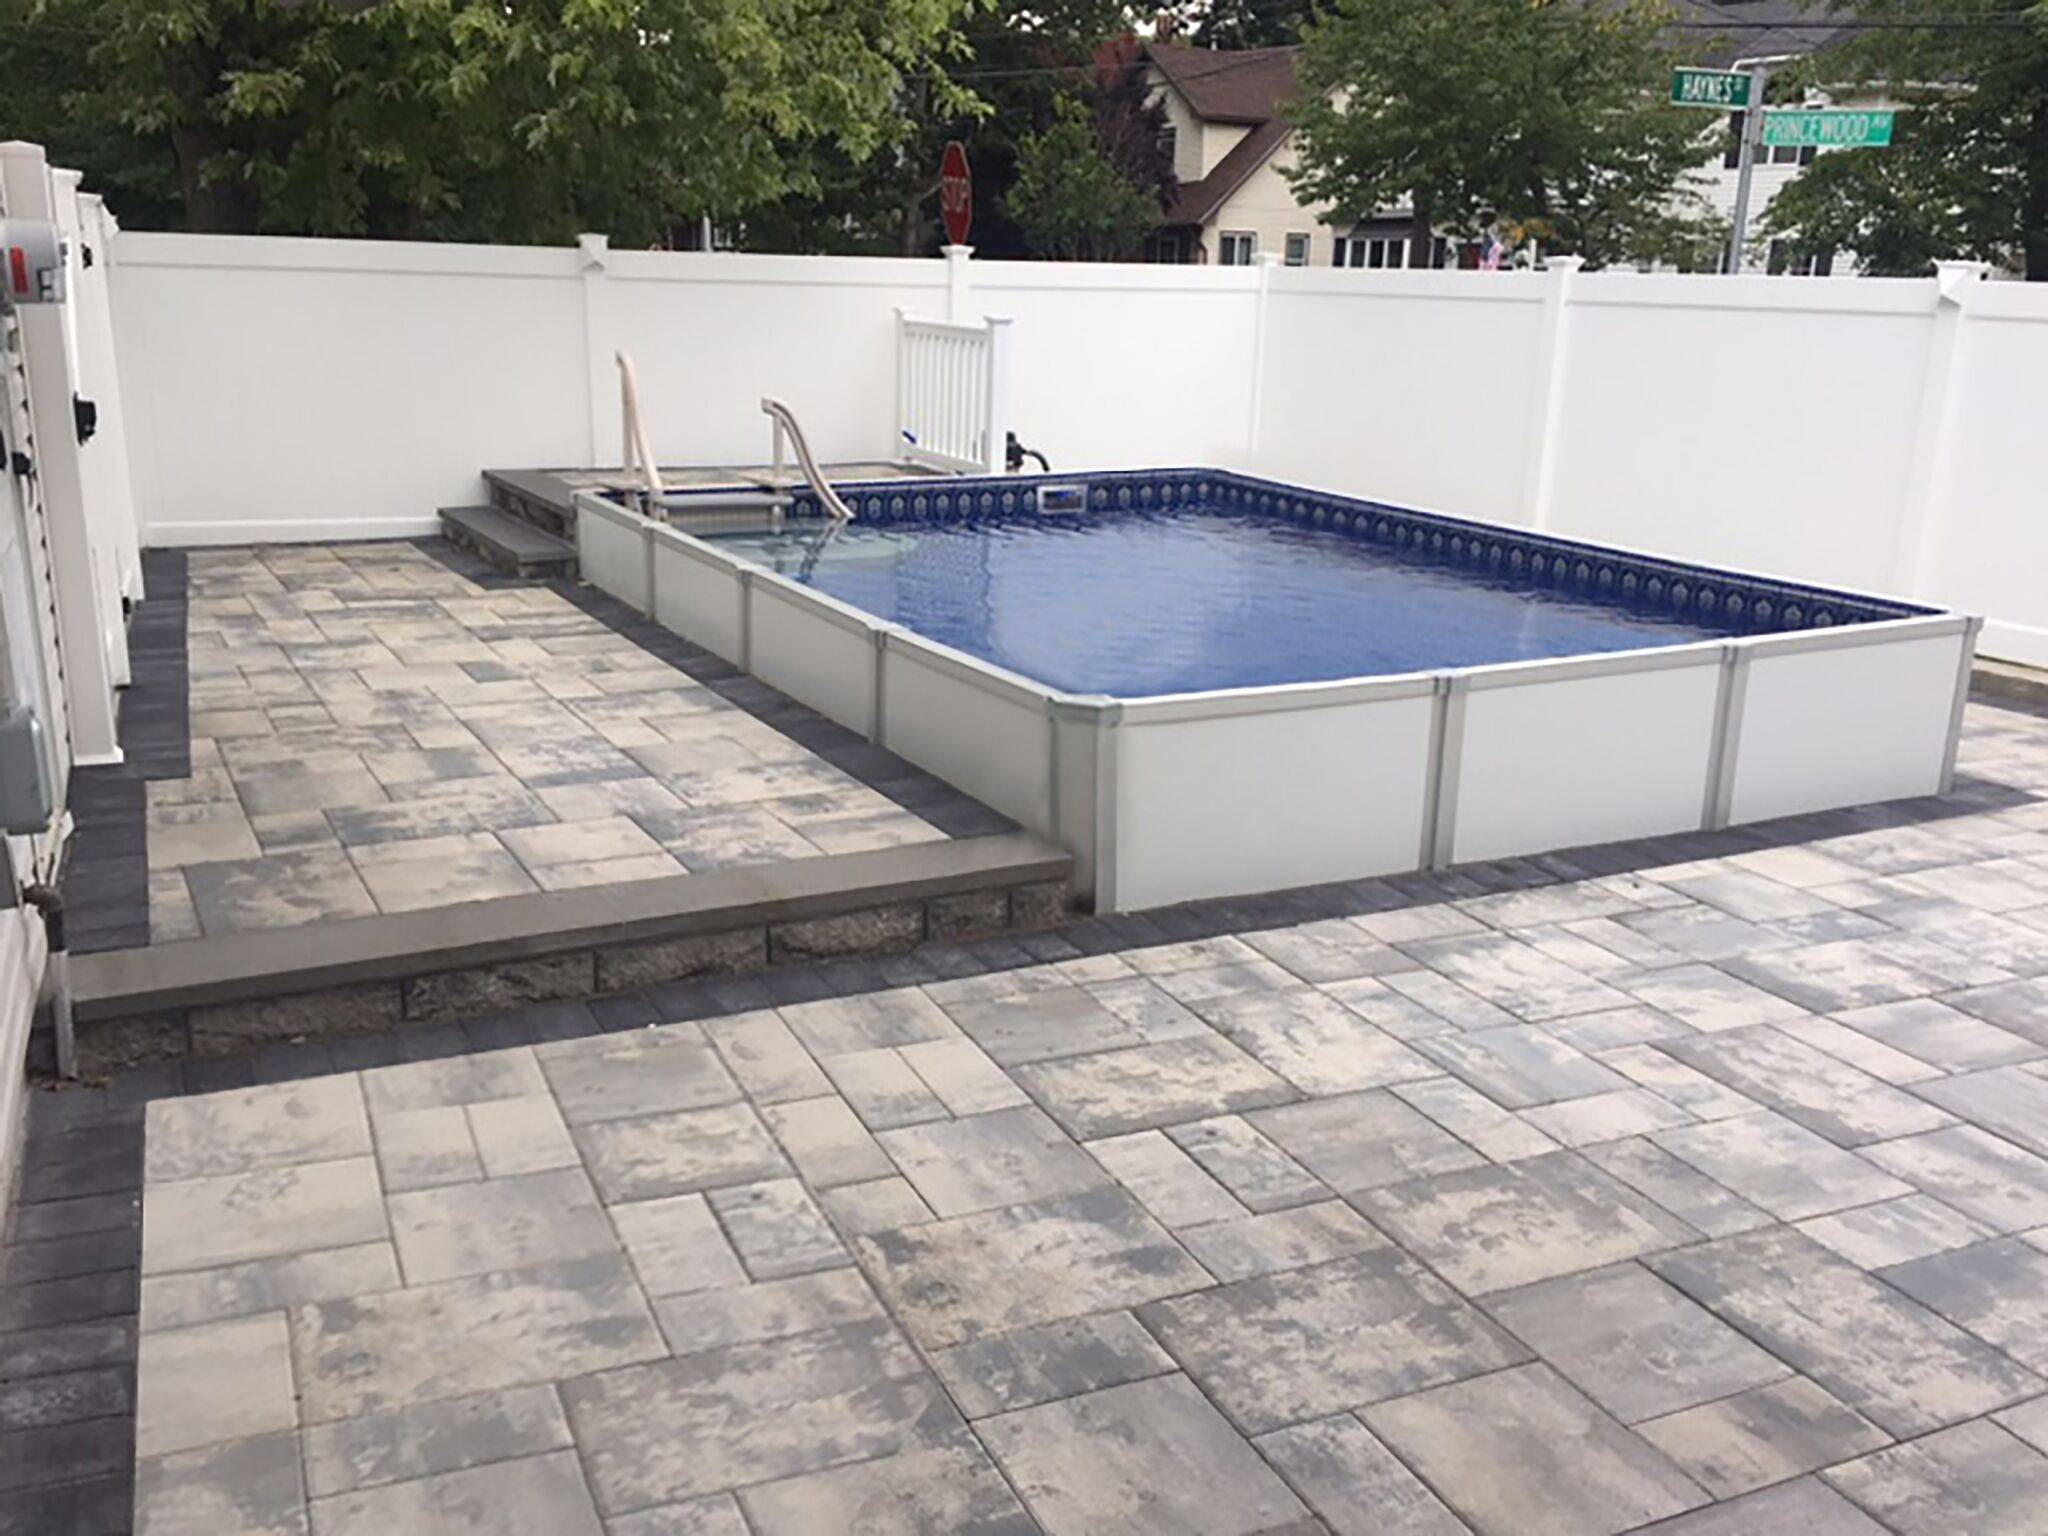 HERCULES POOL Installed 1